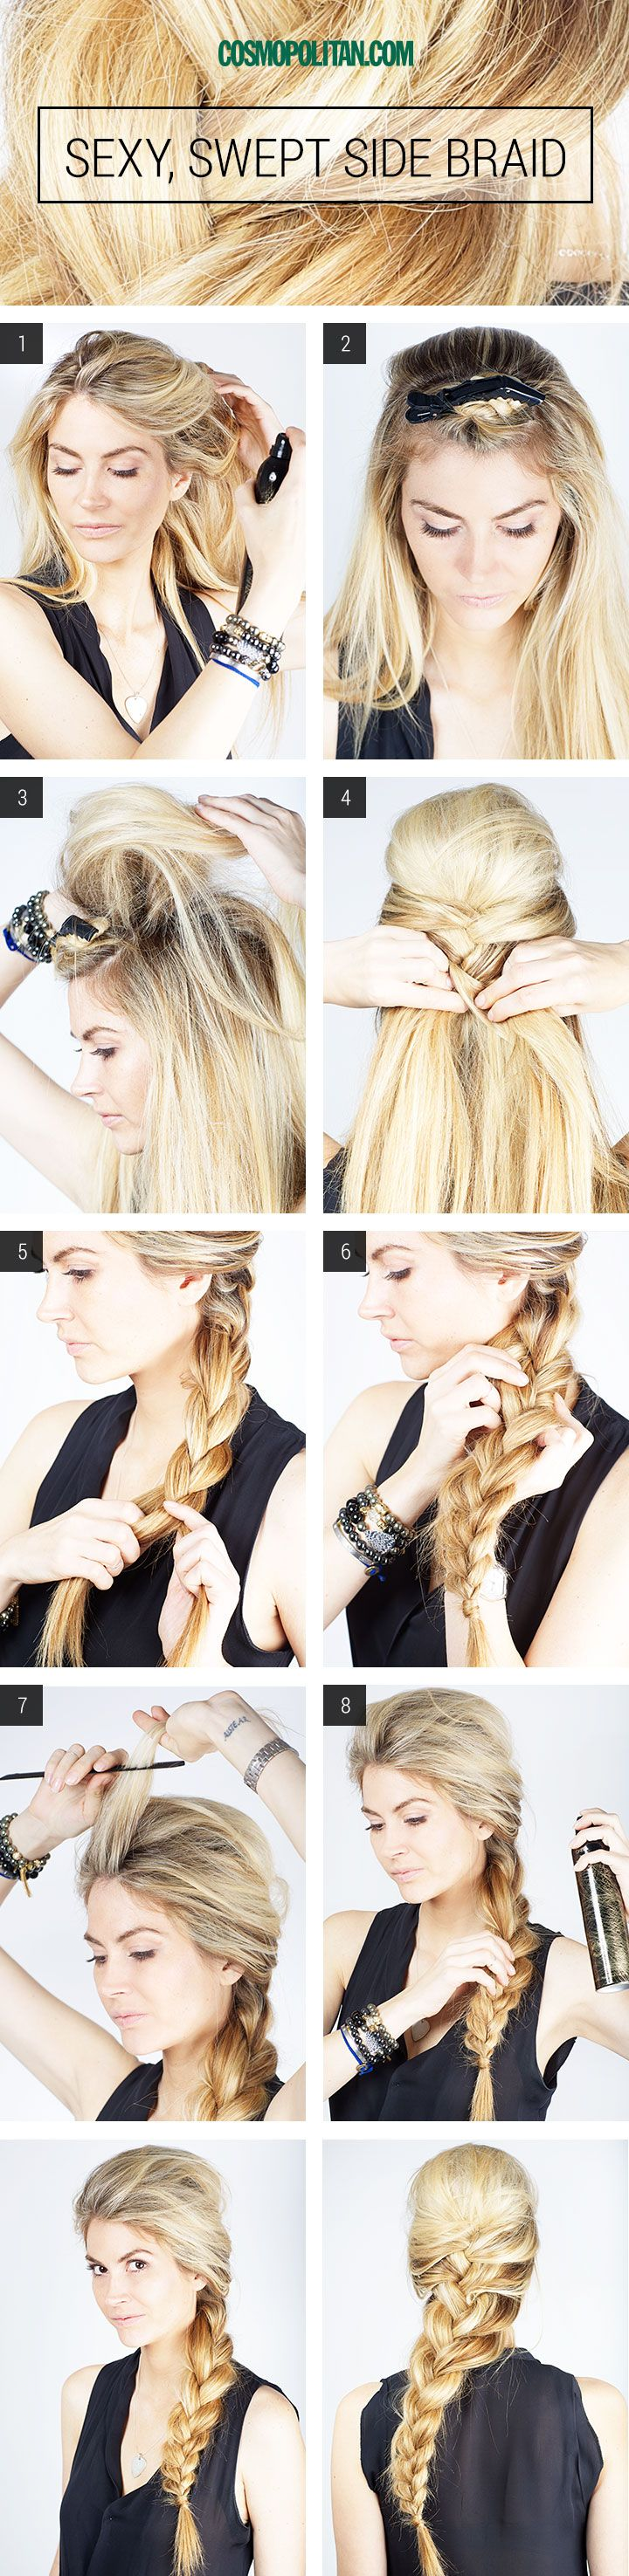 super easy hair looks every woman can do in minutes braid